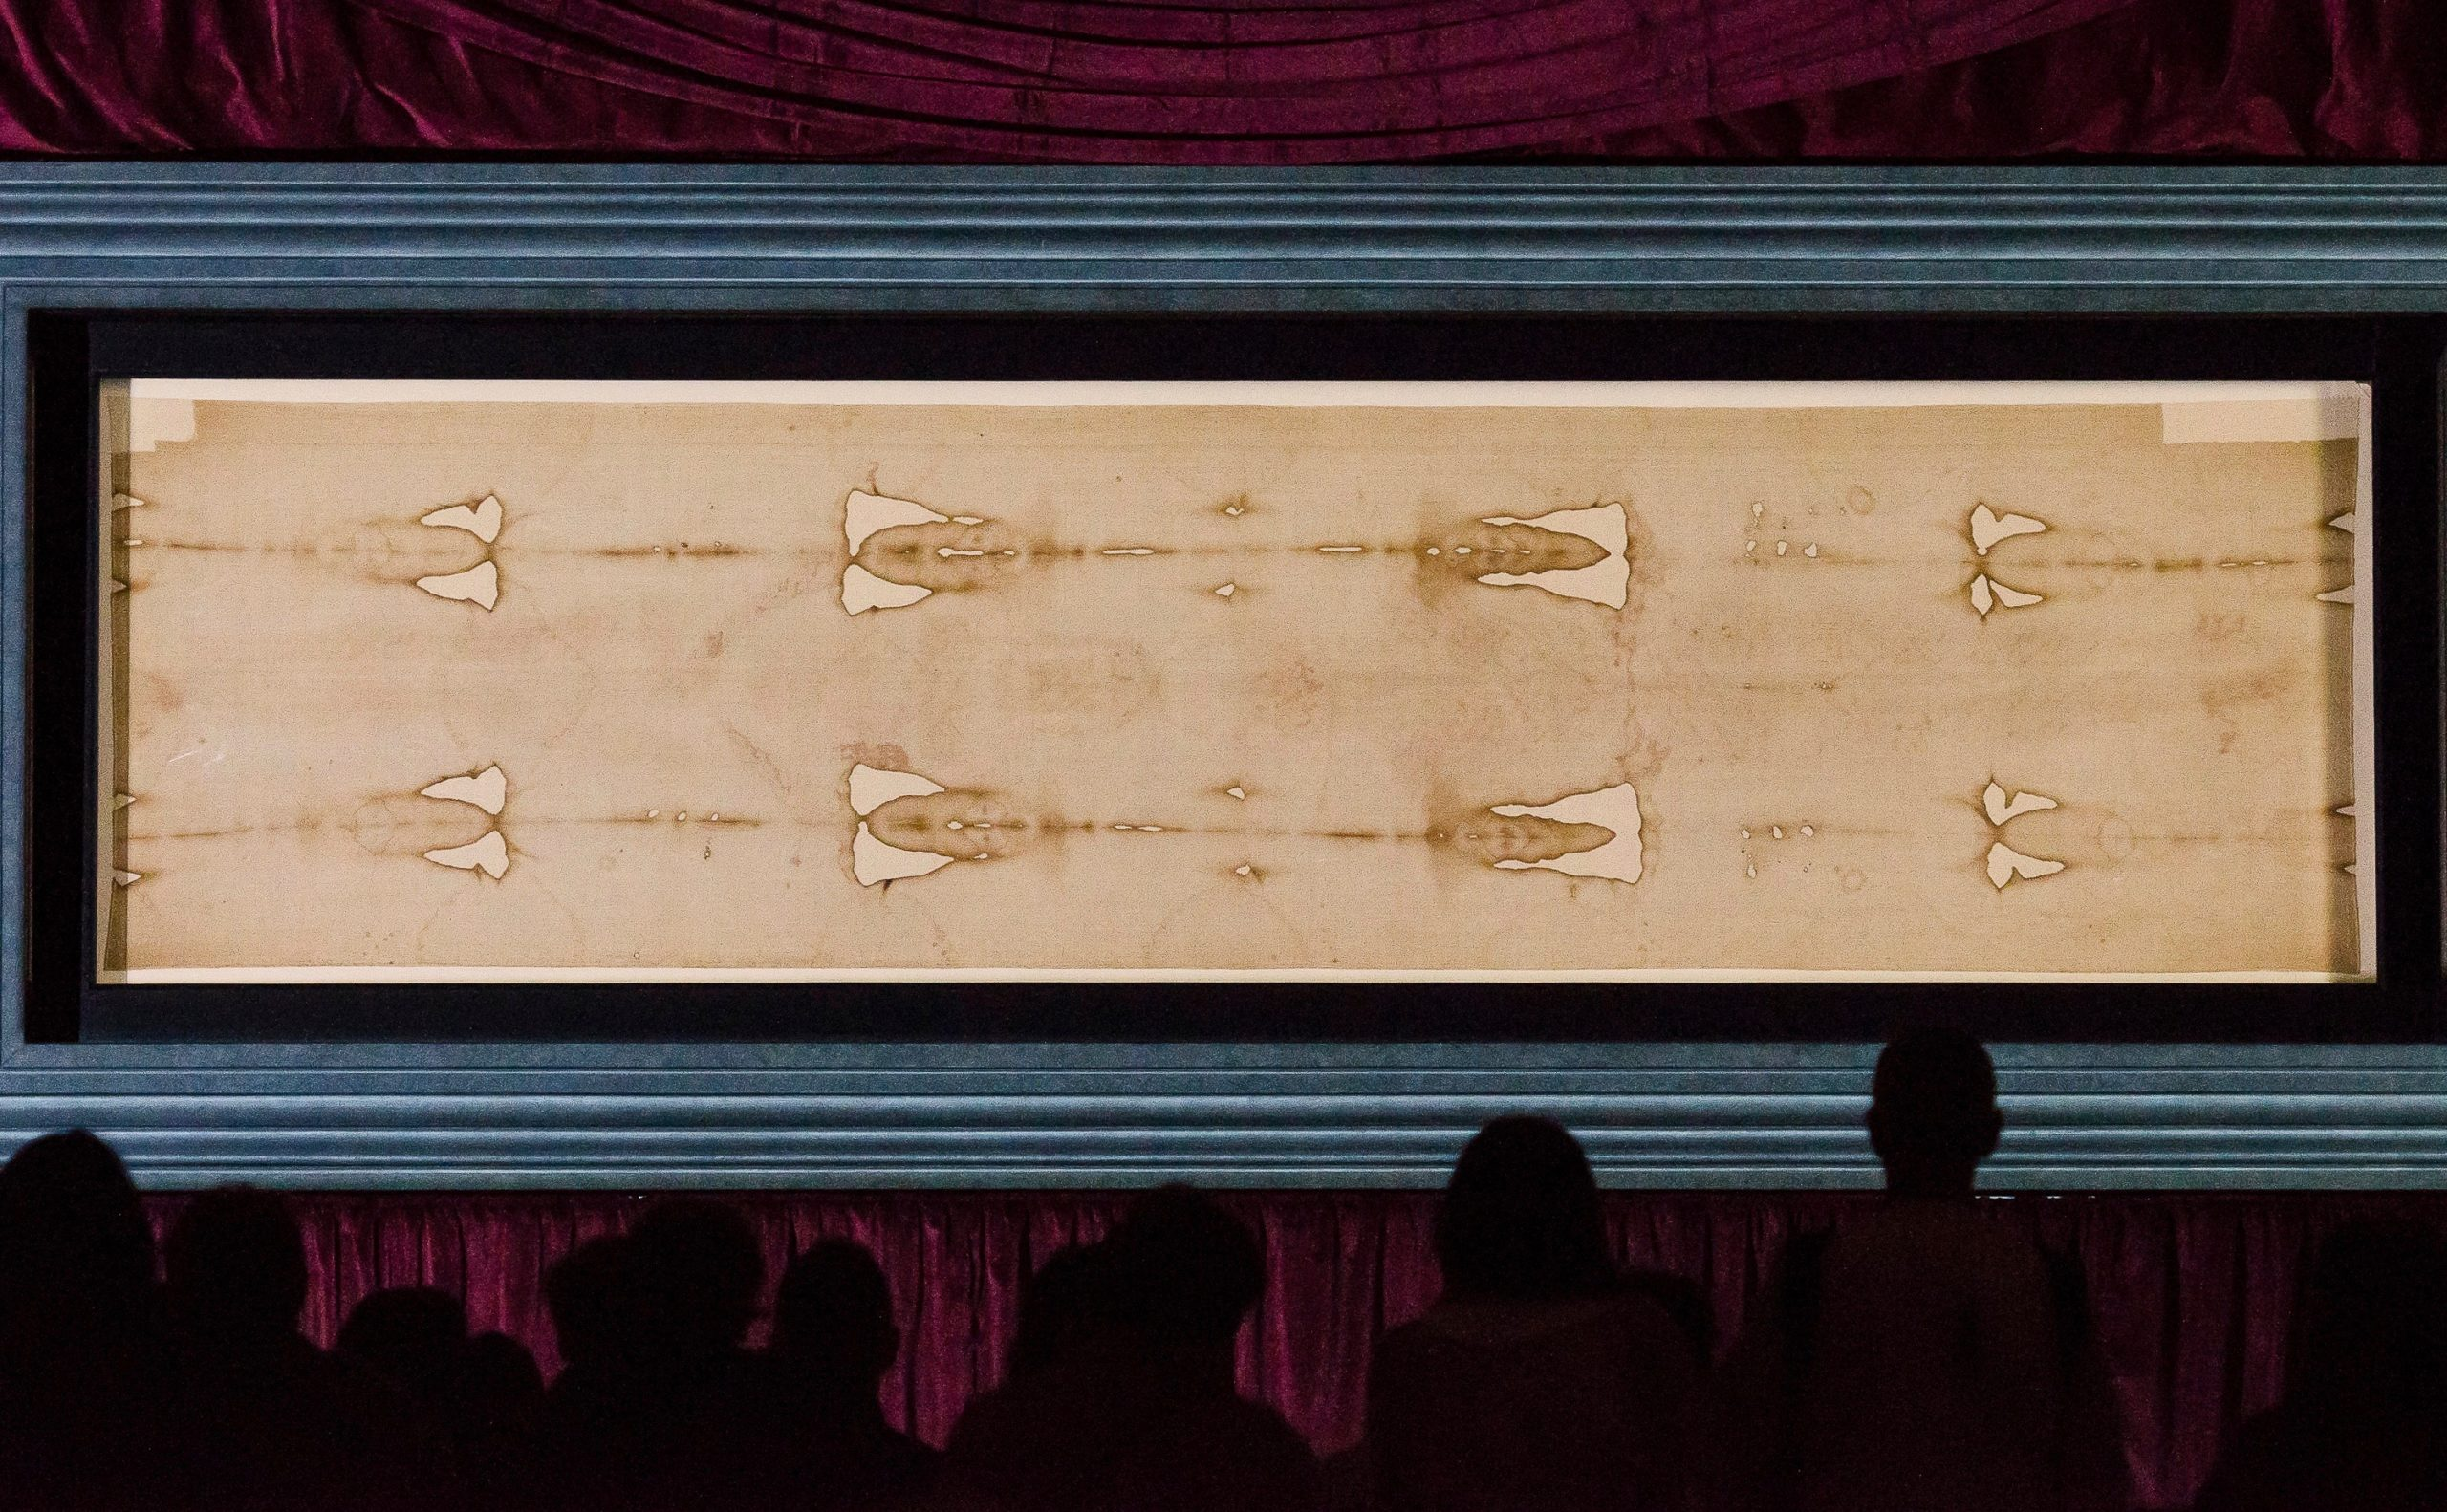 Pilgrims viewing the Shroud during an exposition in 2015 (Stefano Guidi / Shutterstock)